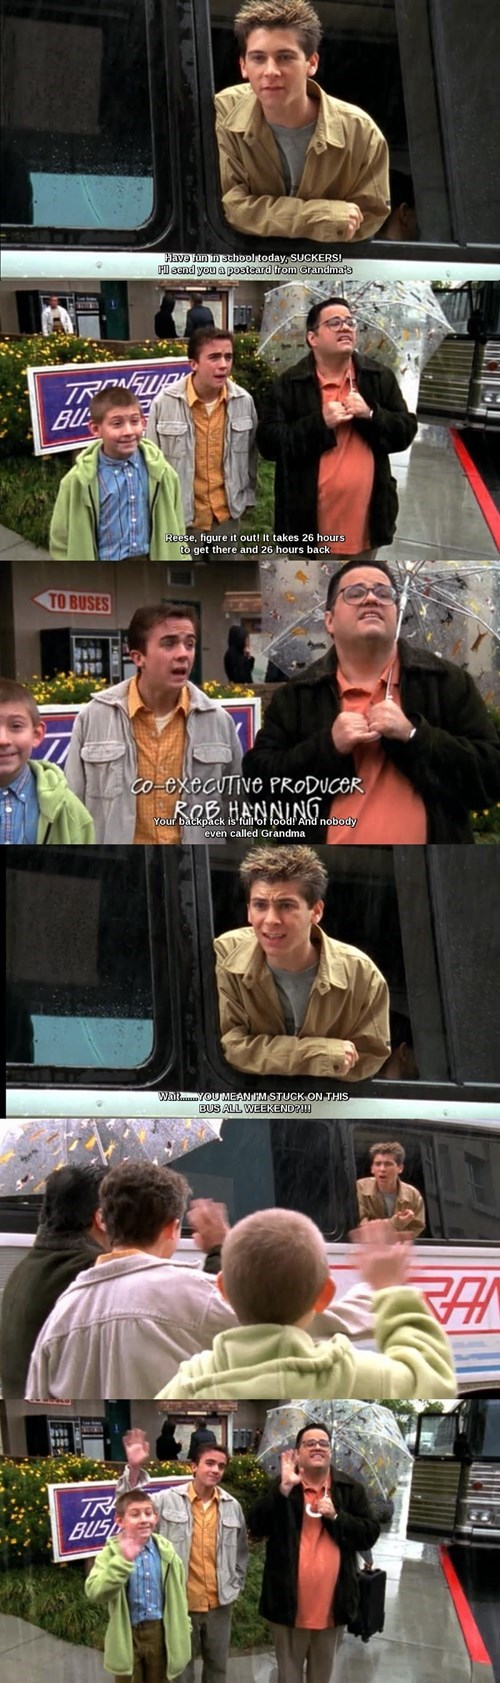 malcolm in the middle grandma funny stupid - 8291762432